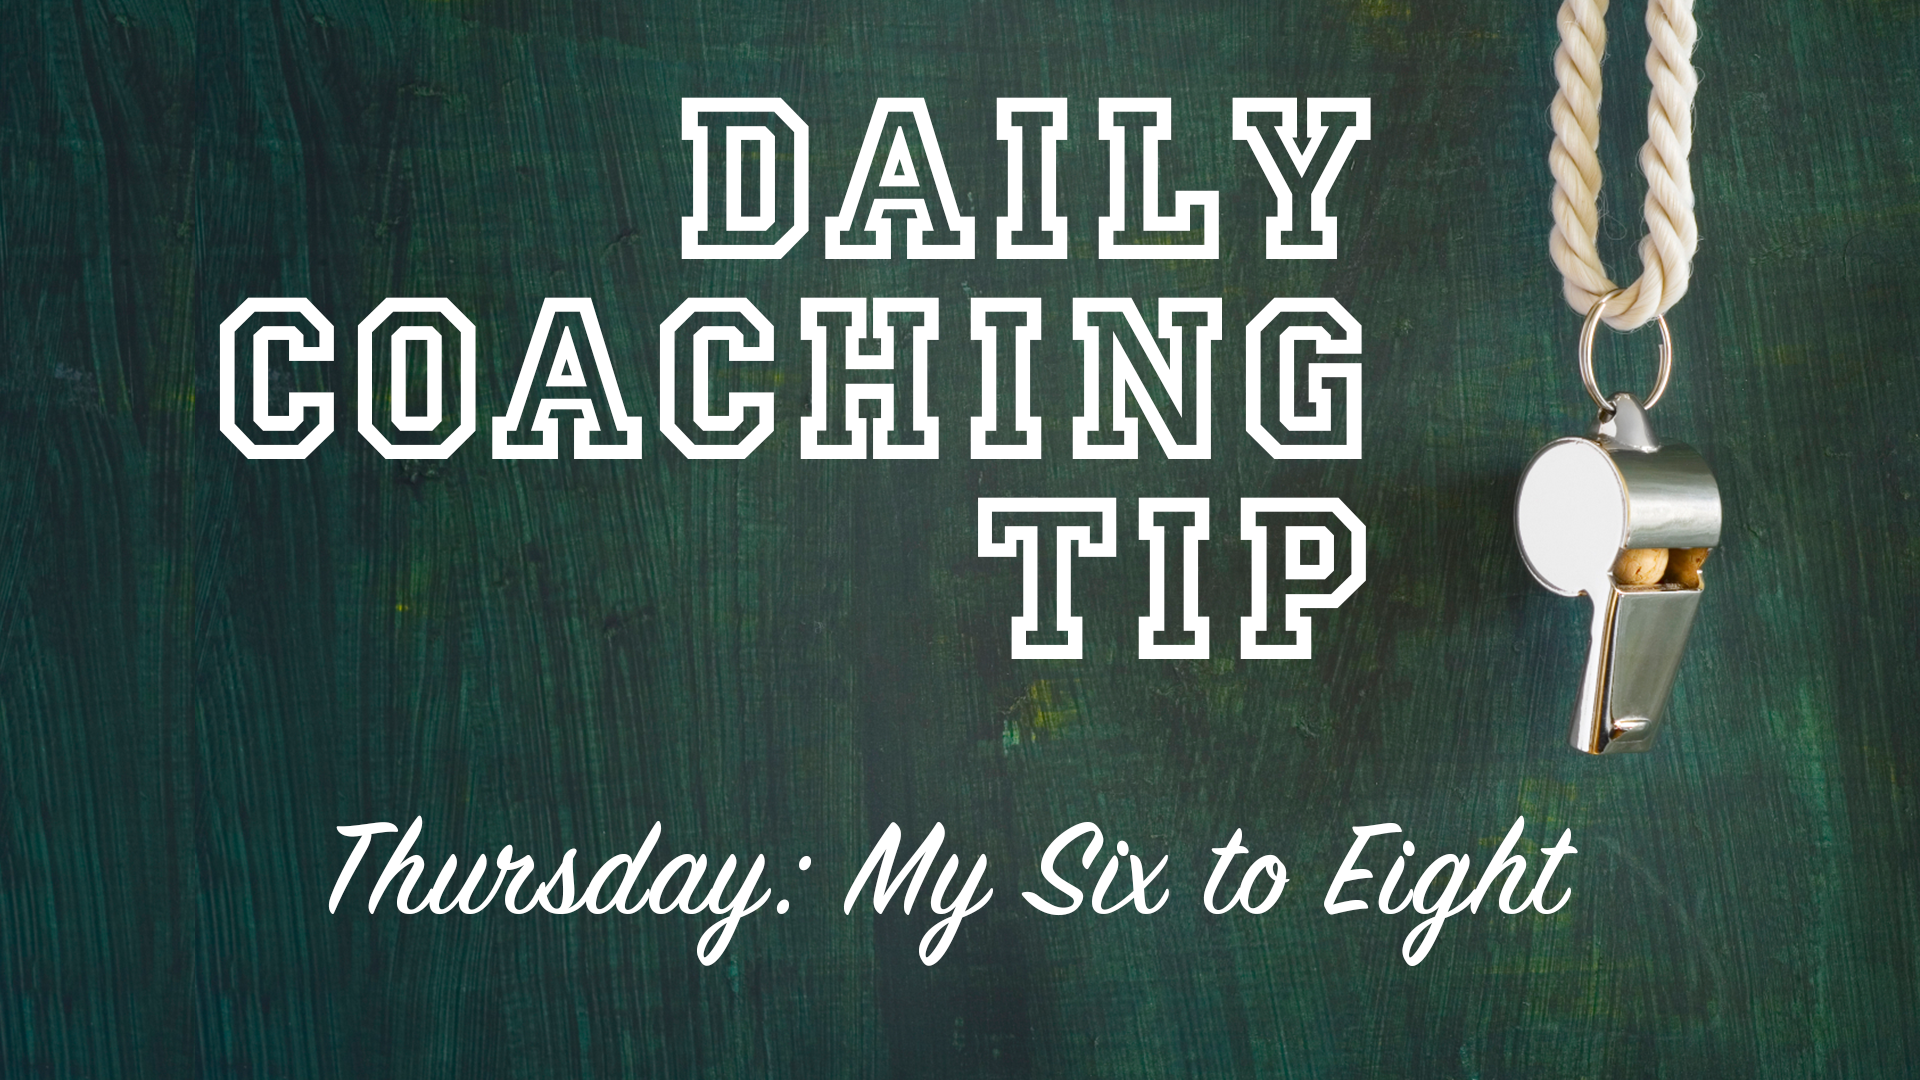 Daily Coaching Tip, Thursday, May 5, 2016